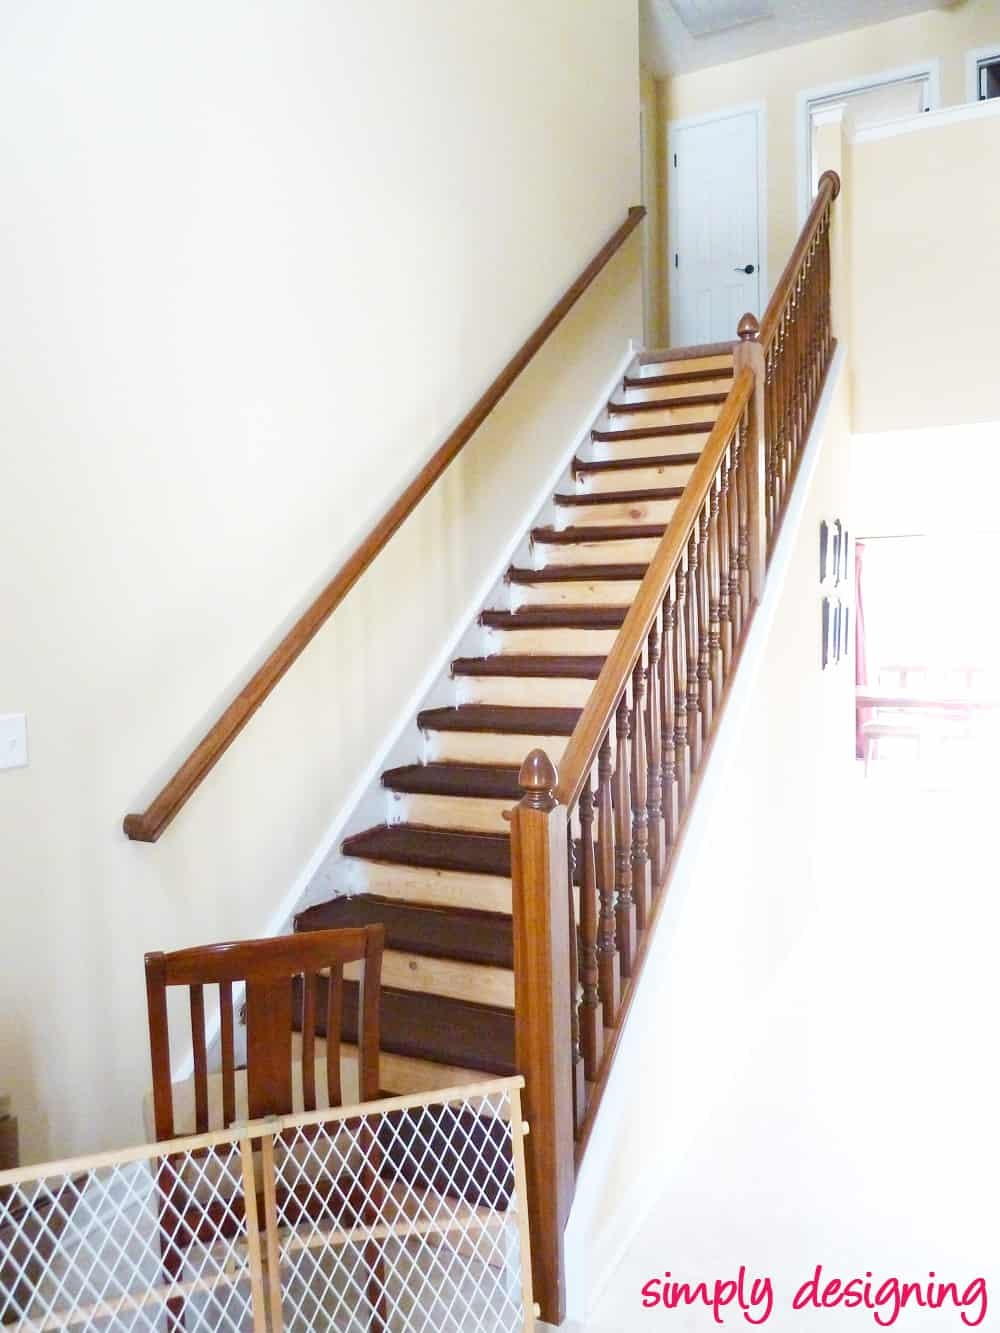 Staircase Make Over Part 2 Mistakes To Avoid And How To Do It Right   Sanding And Staining Stairs   Pine   Stair Railing   Wood Stairs   Stair Case   Stair Risers